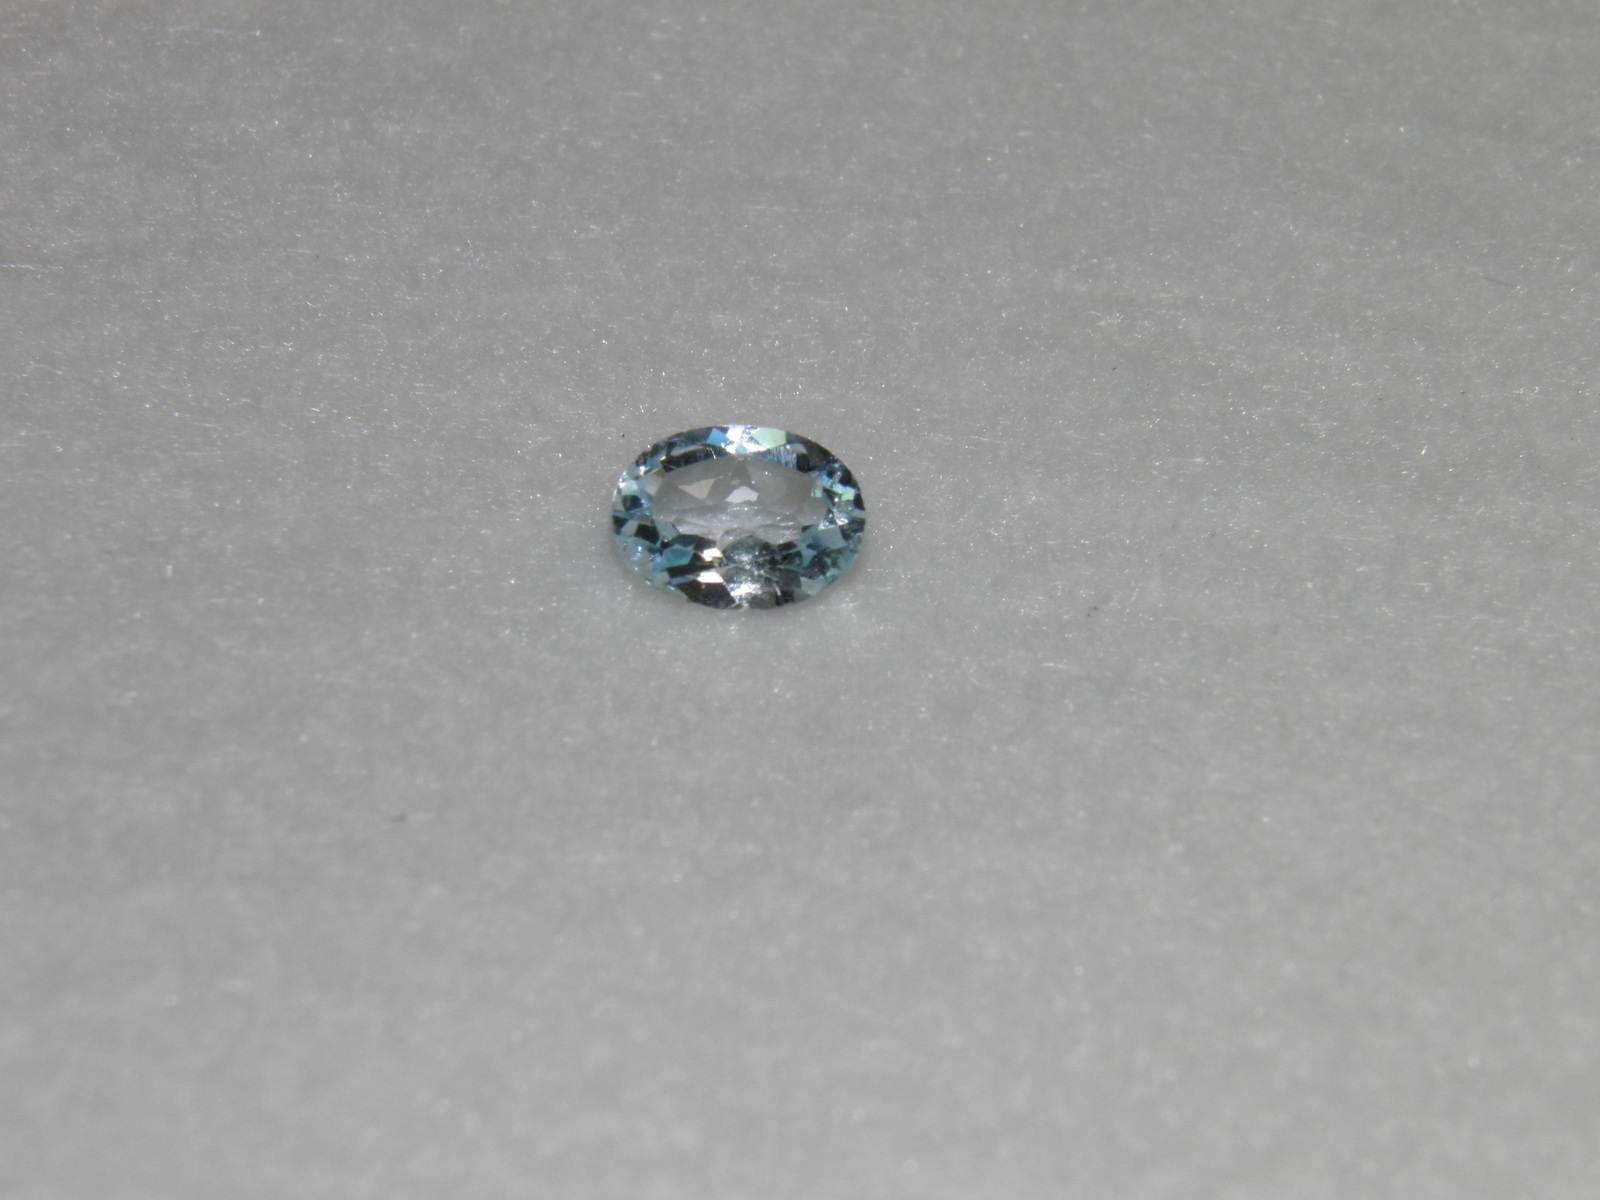 New 1.75ct Oval Solitaire Sky / Swiss Blue Topaz Calibrated 9x7mm Fits Settings